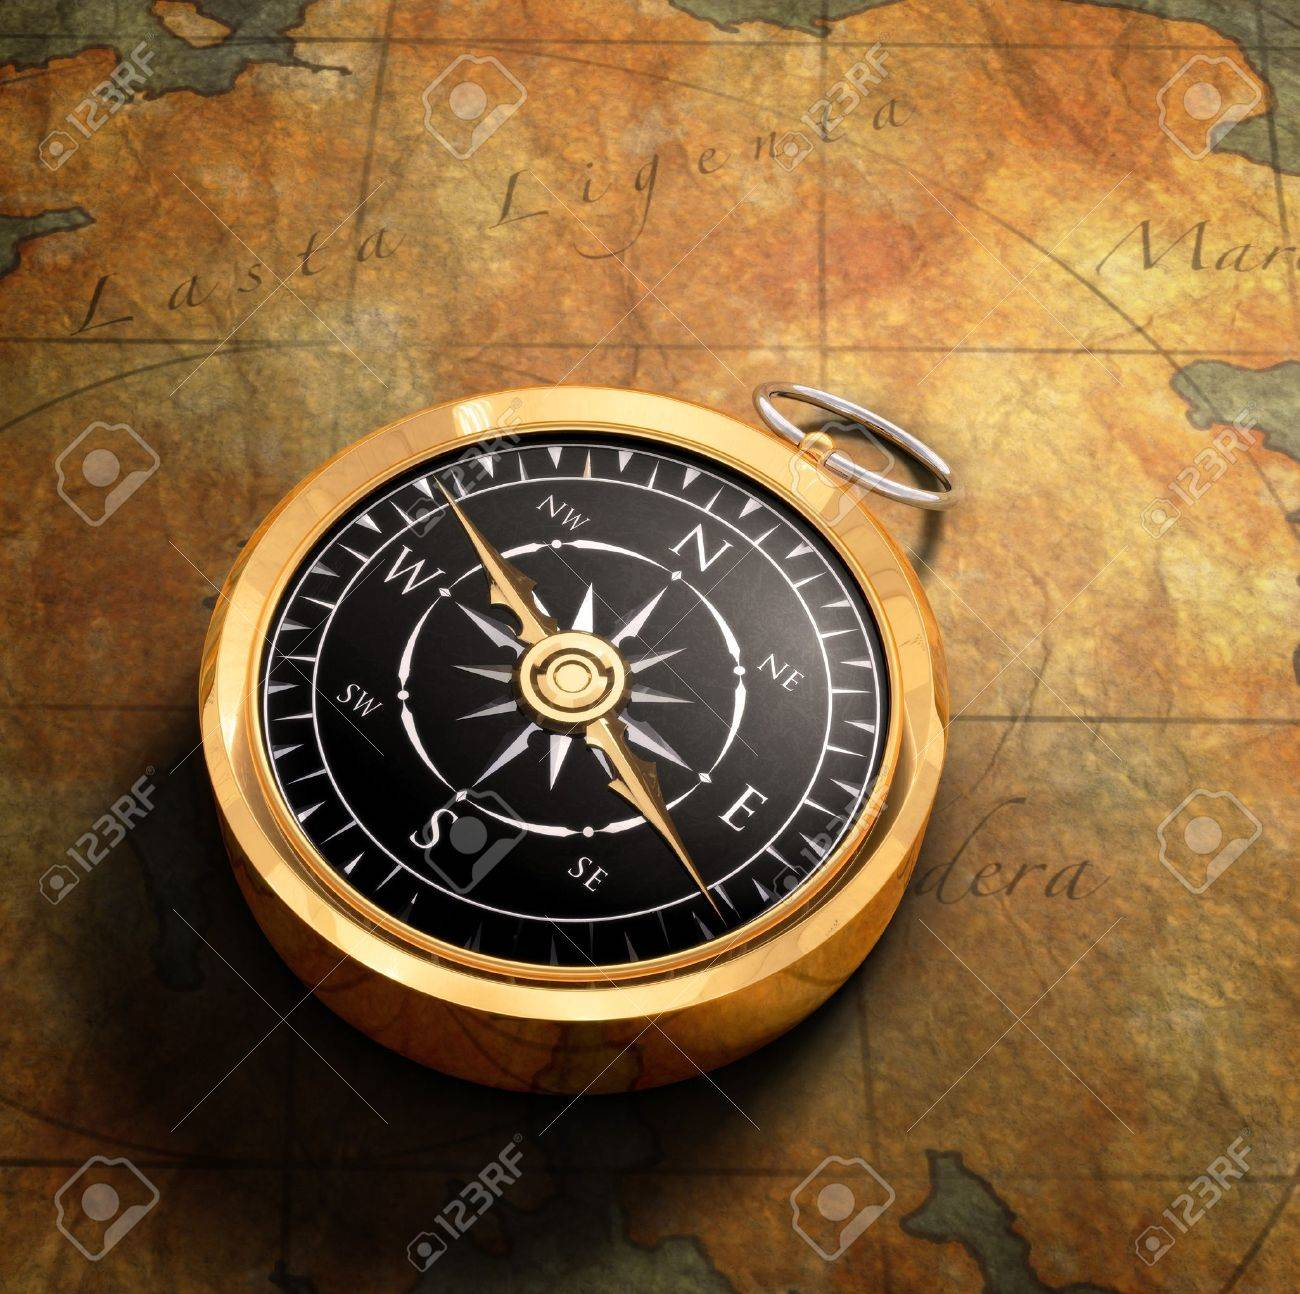 An old fashoned brass compass on a Treasure map background Stock Photo - 7059452